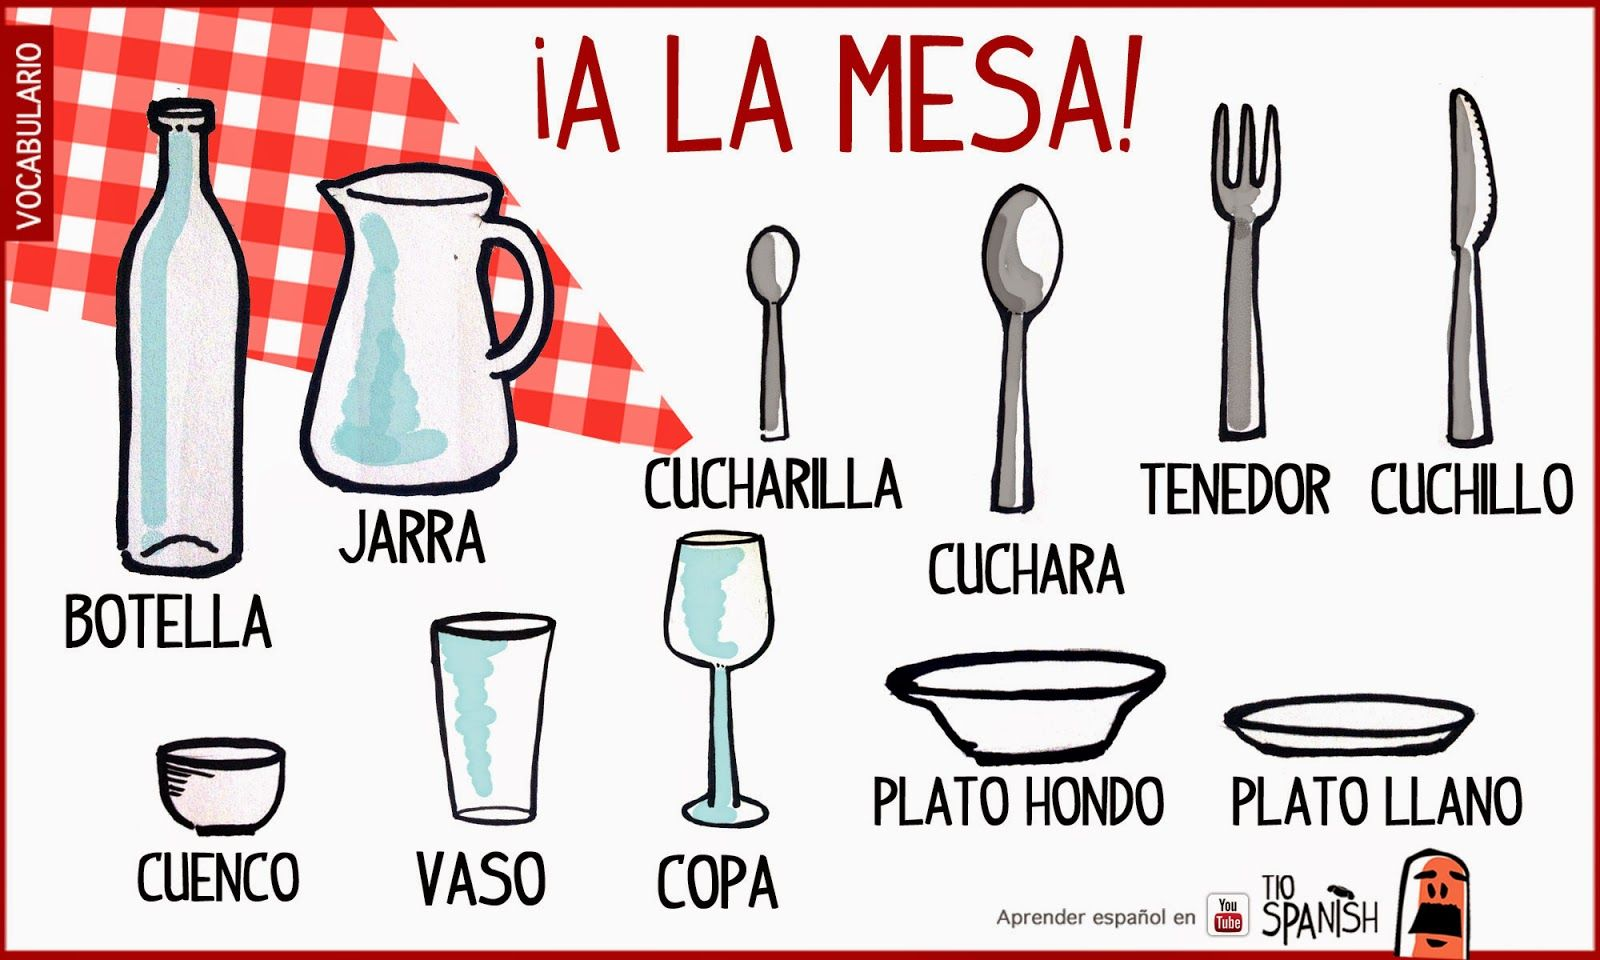 Spanish Vocabulary For Kitchen Utensils Spanish Words Vocabulario De La Mesa